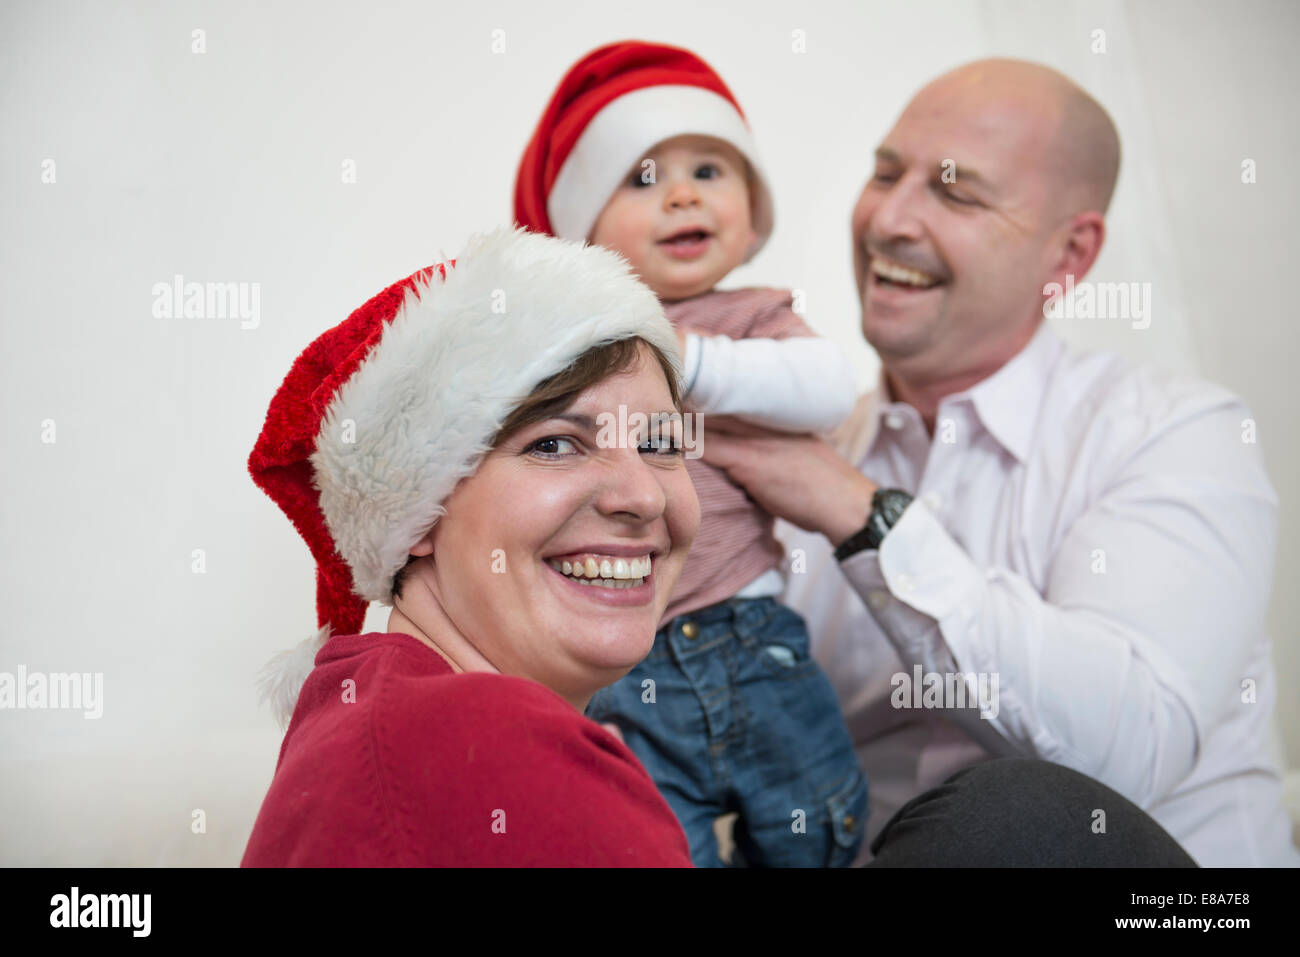 Family celebrating Christmas with Christmas caps - Stock Image